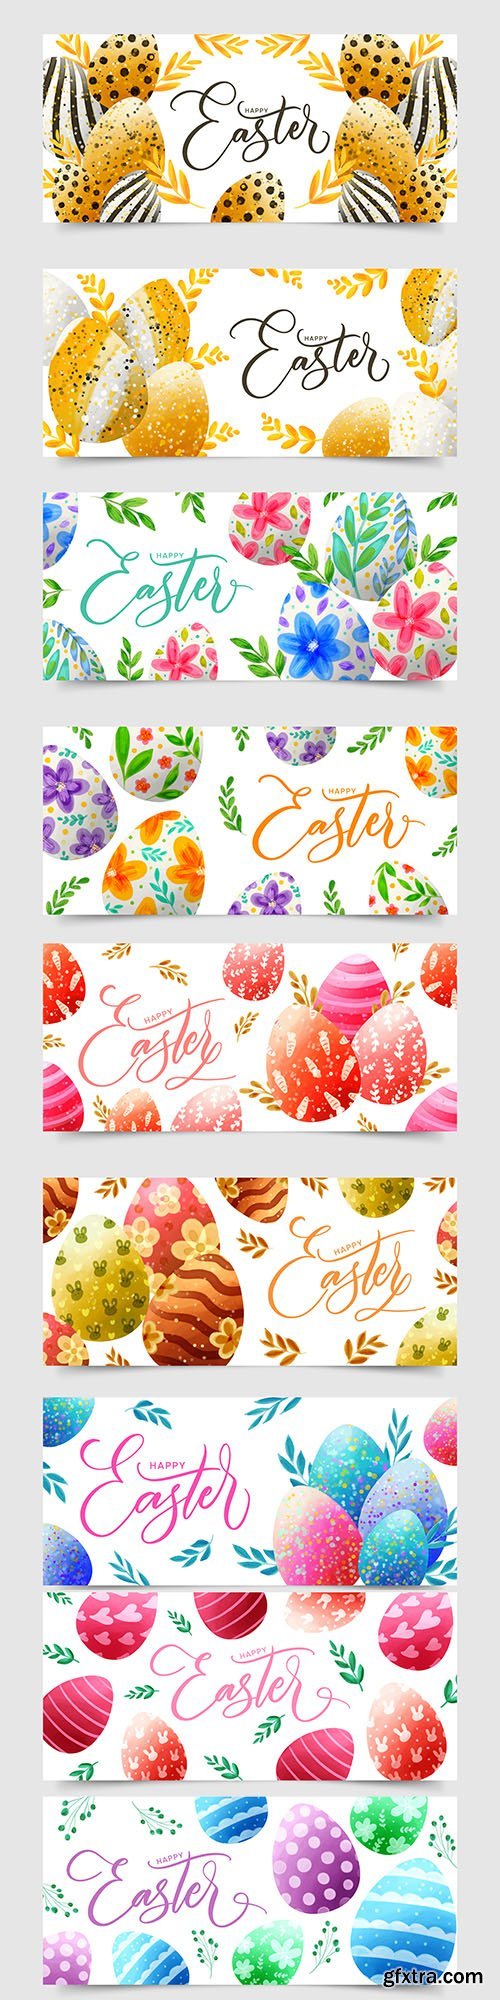 Easter eggs banners watercolor design illustrations